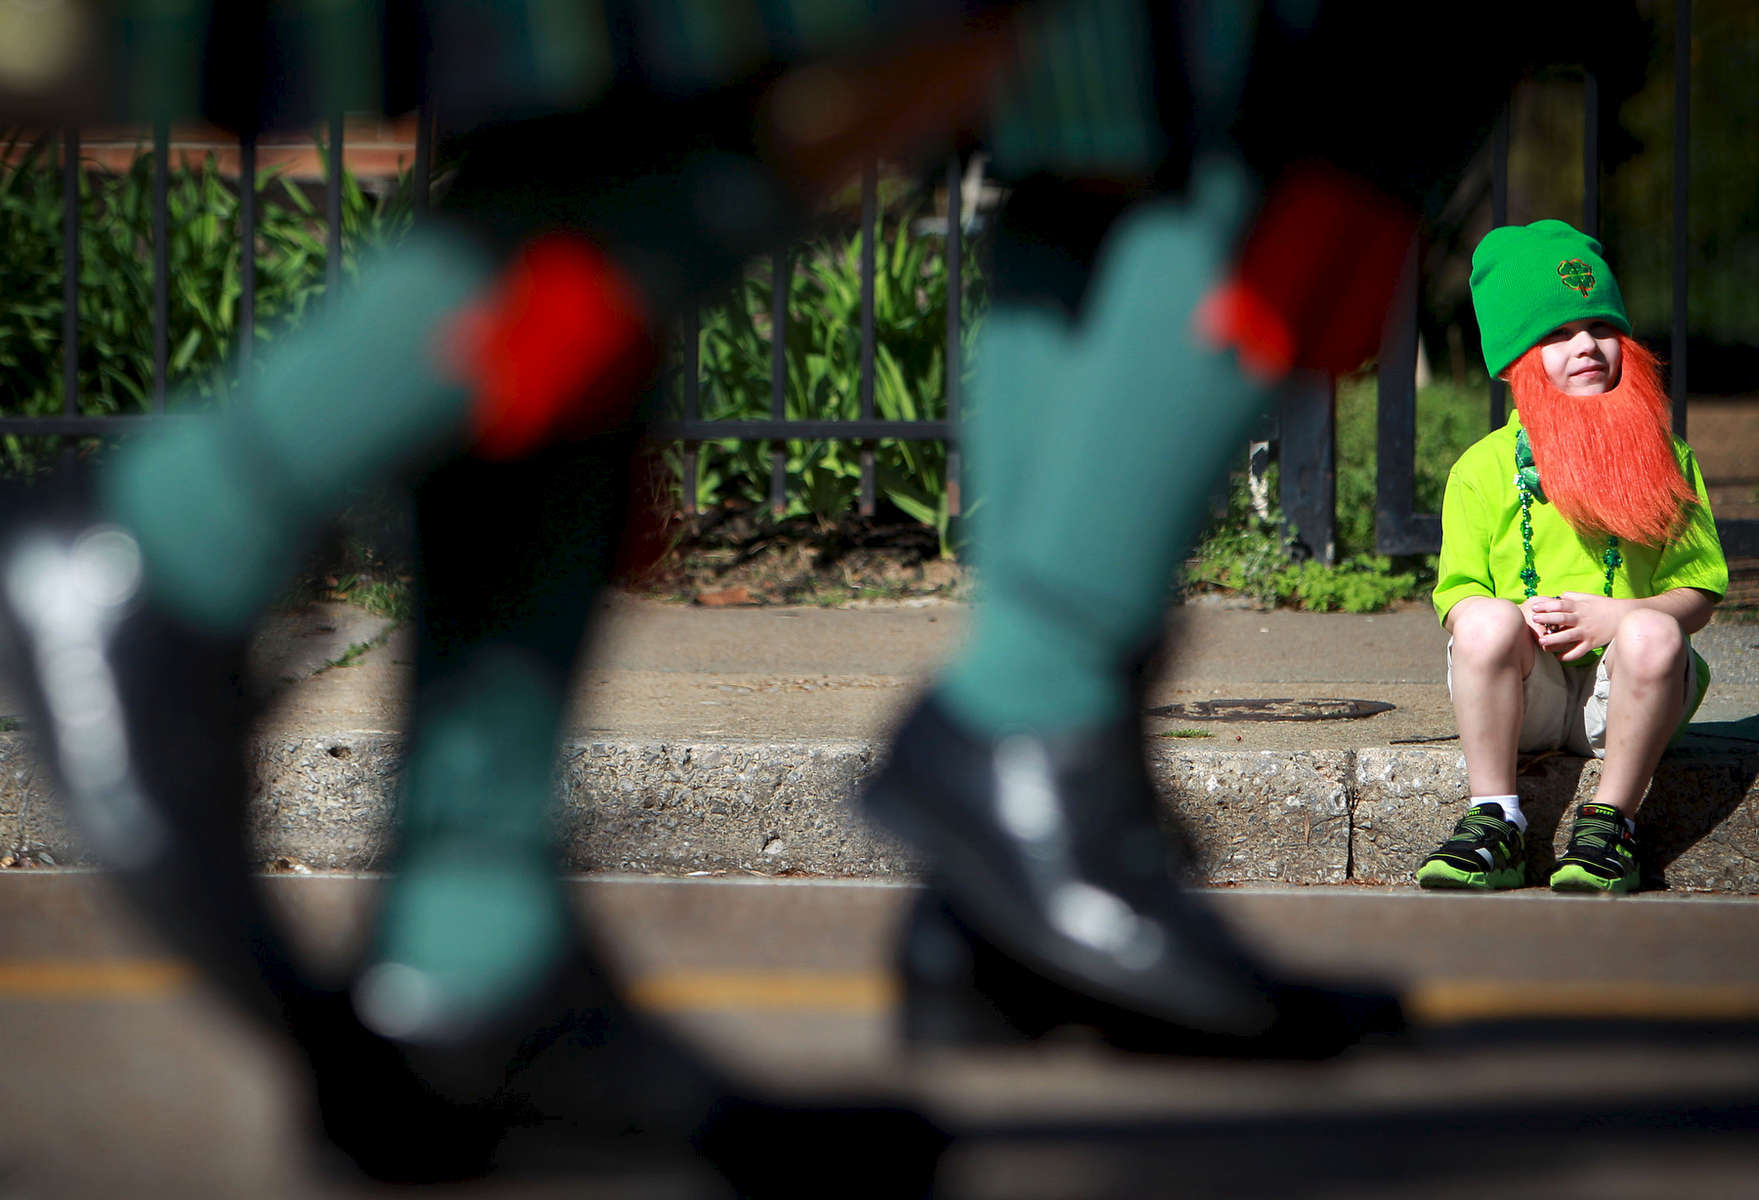 March 17, 2016 - Miles Fletcher, 5, watches a St. Patrick's Day parade march through Cooper-Young. The event marked the inaugural parade organized by the Memphis Irish Society which also celebrated the 100th anniversary of the 1916 Easter Rising which resulted in Irish independence. (Mike Brown/The Commercial Appeal)